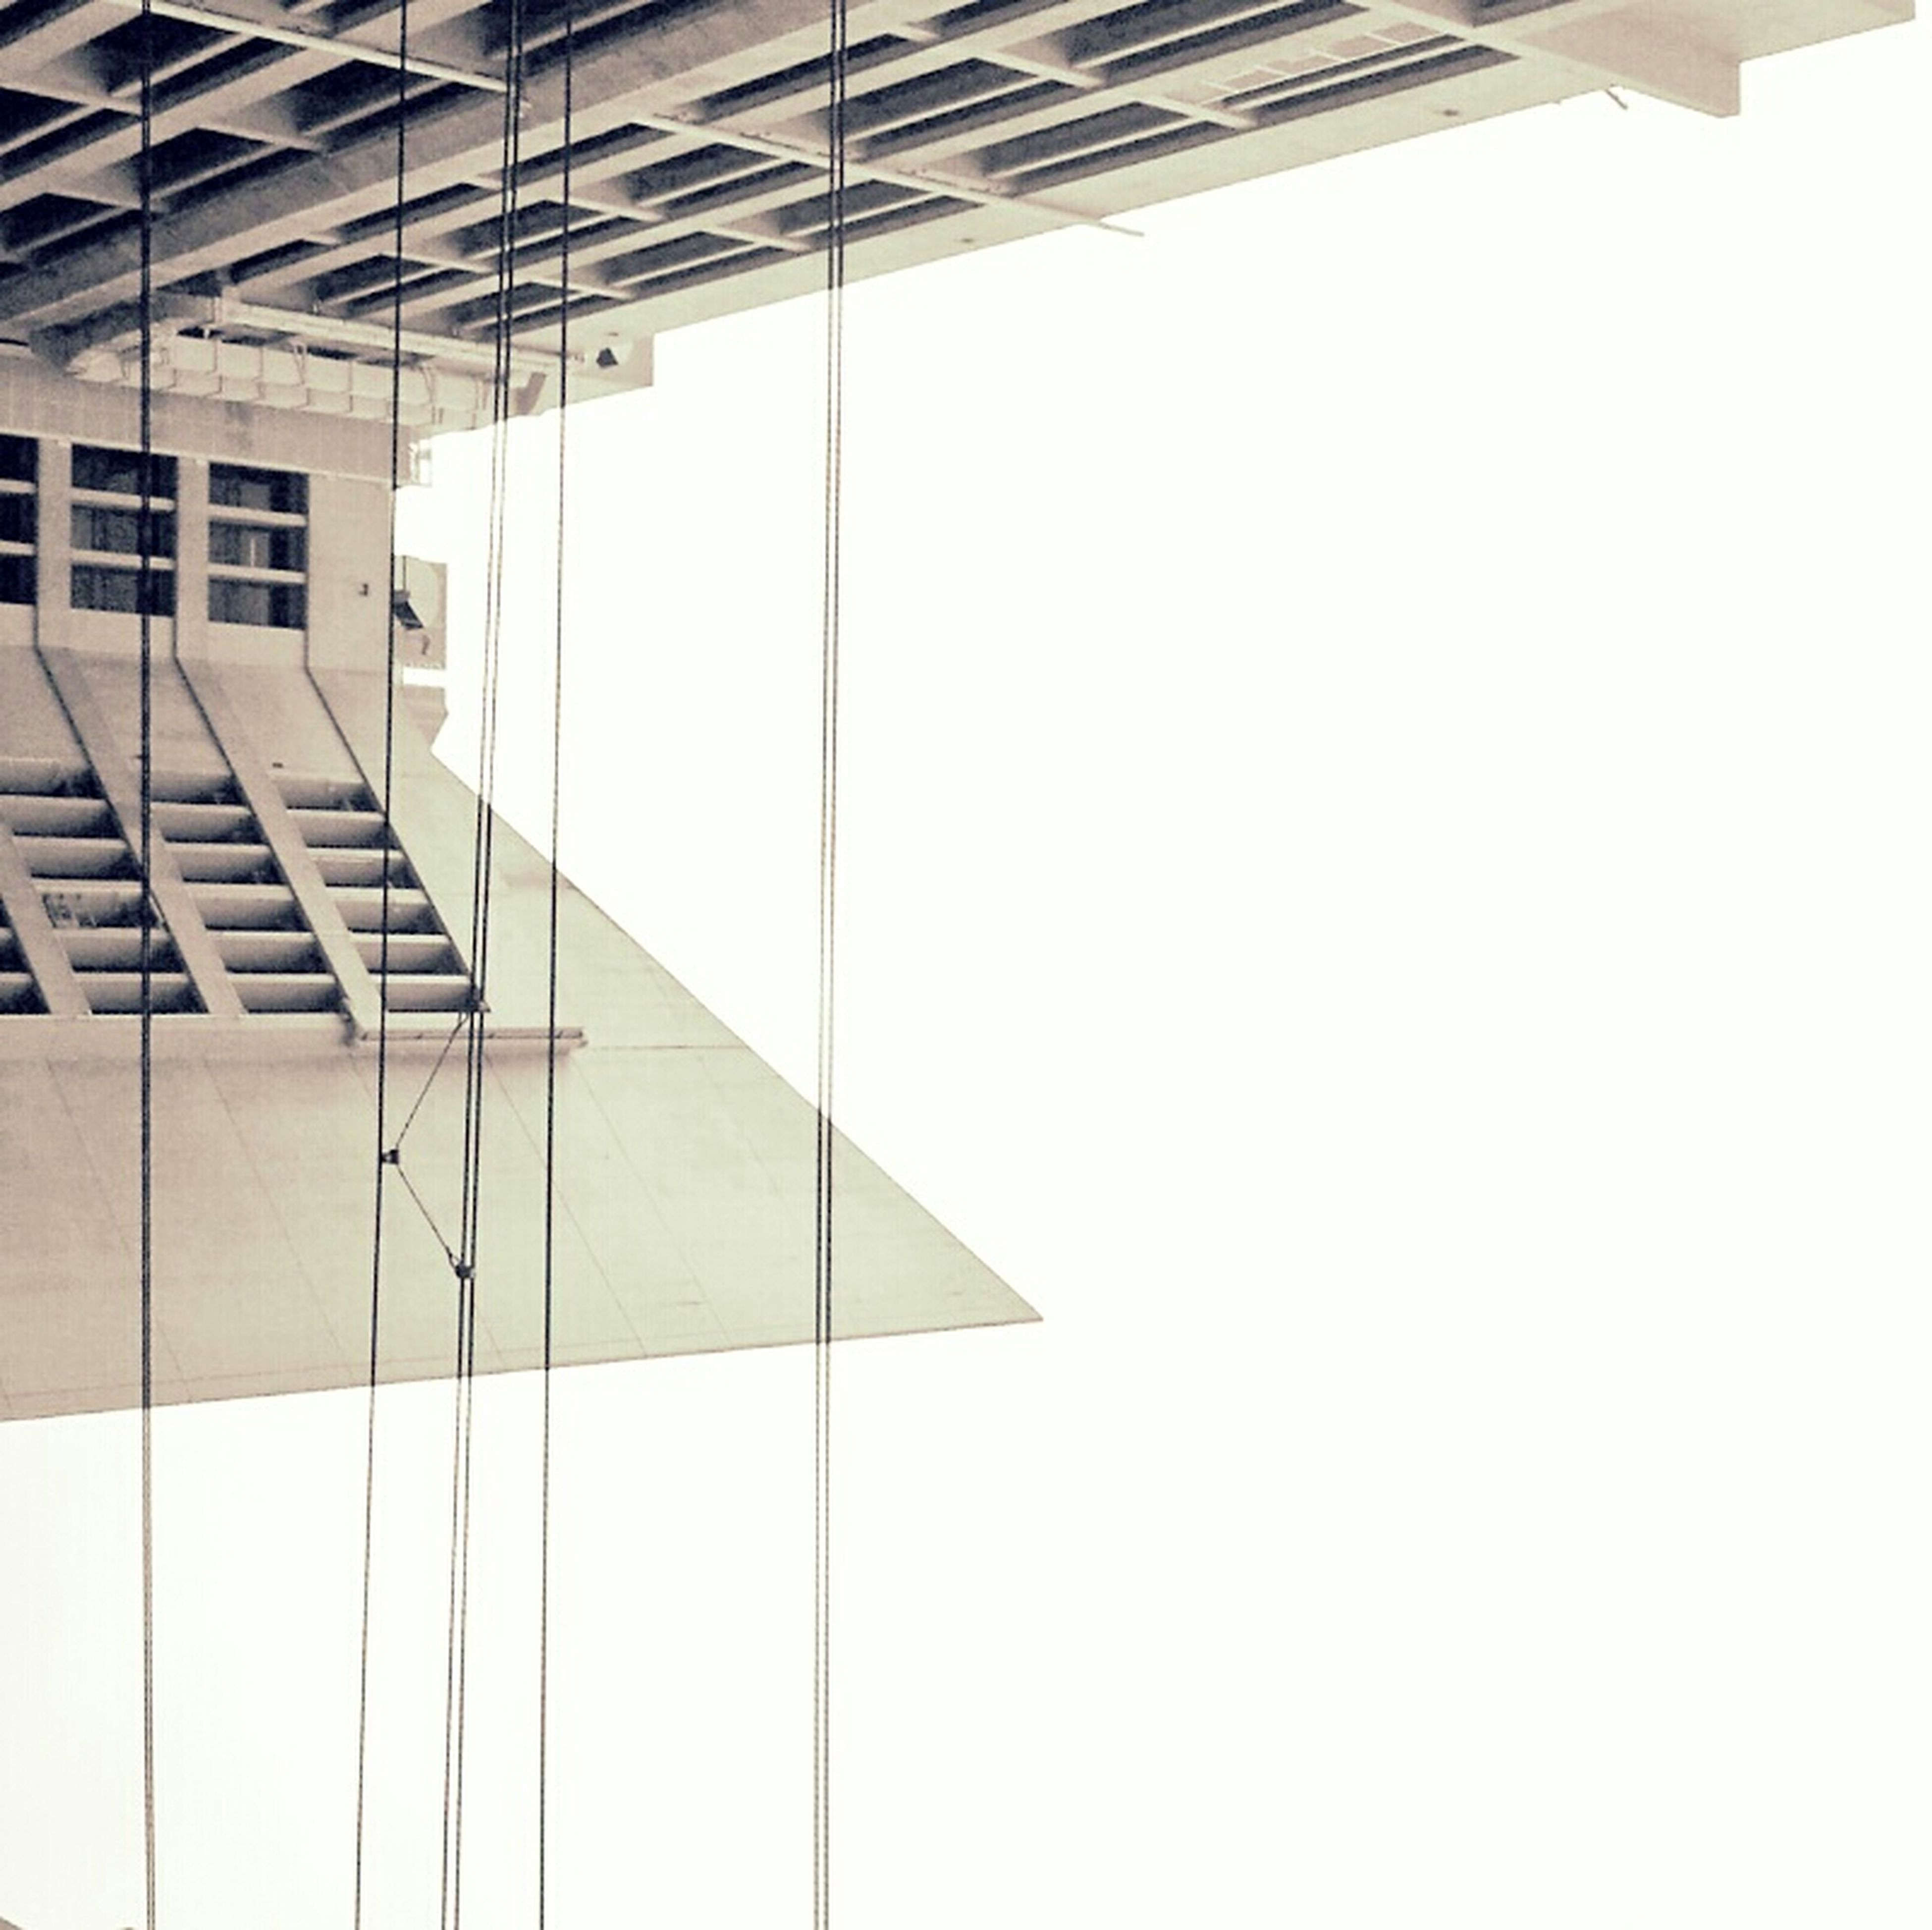 architecture, built structure, building exterior, modern, building, low angle view, indoors, clear sky, directly below, copy space, office building, city, ceiling, no people, window, day, geometric shape, sunlight, pattern, diminishing perspective